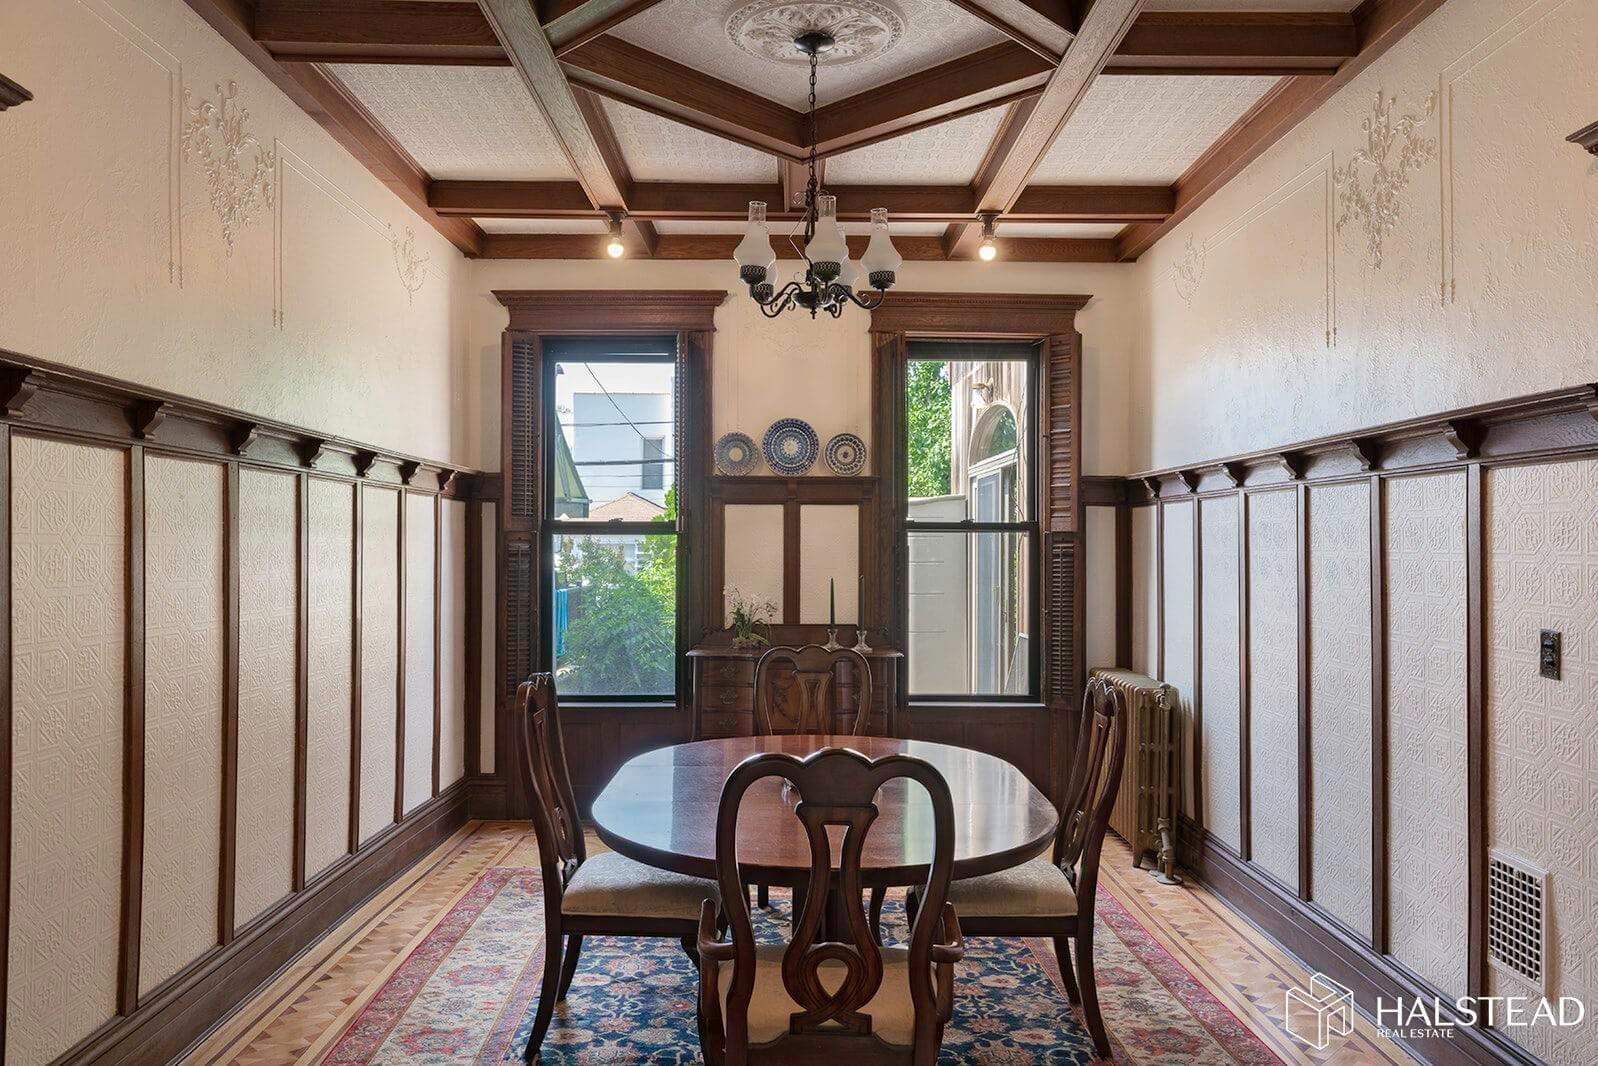 Well-Preserved Bay Ridge Townhouse With Stained Glass, Fancy Dining Room Asks $1.275 Million